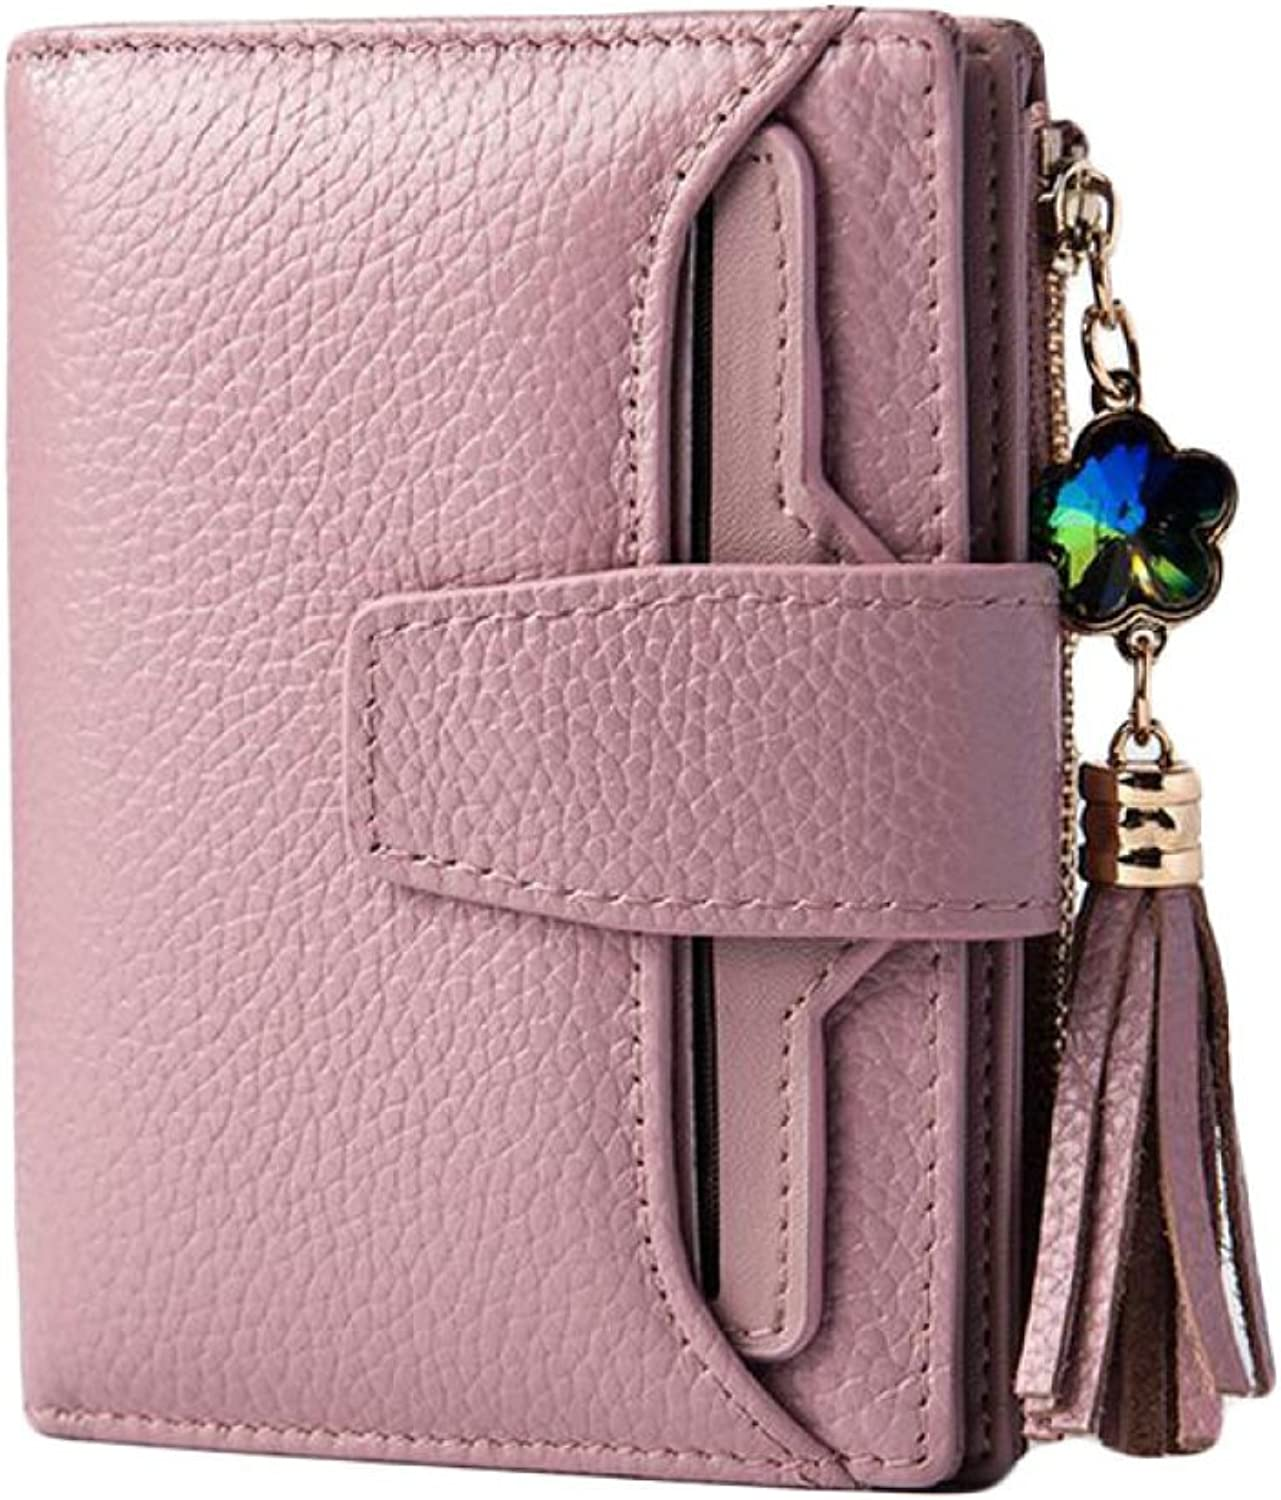 Lady Fashion Short Wallet Female Three Fold Wallet Wallet Holding Bag Credit Card Package,Pink1OneSize